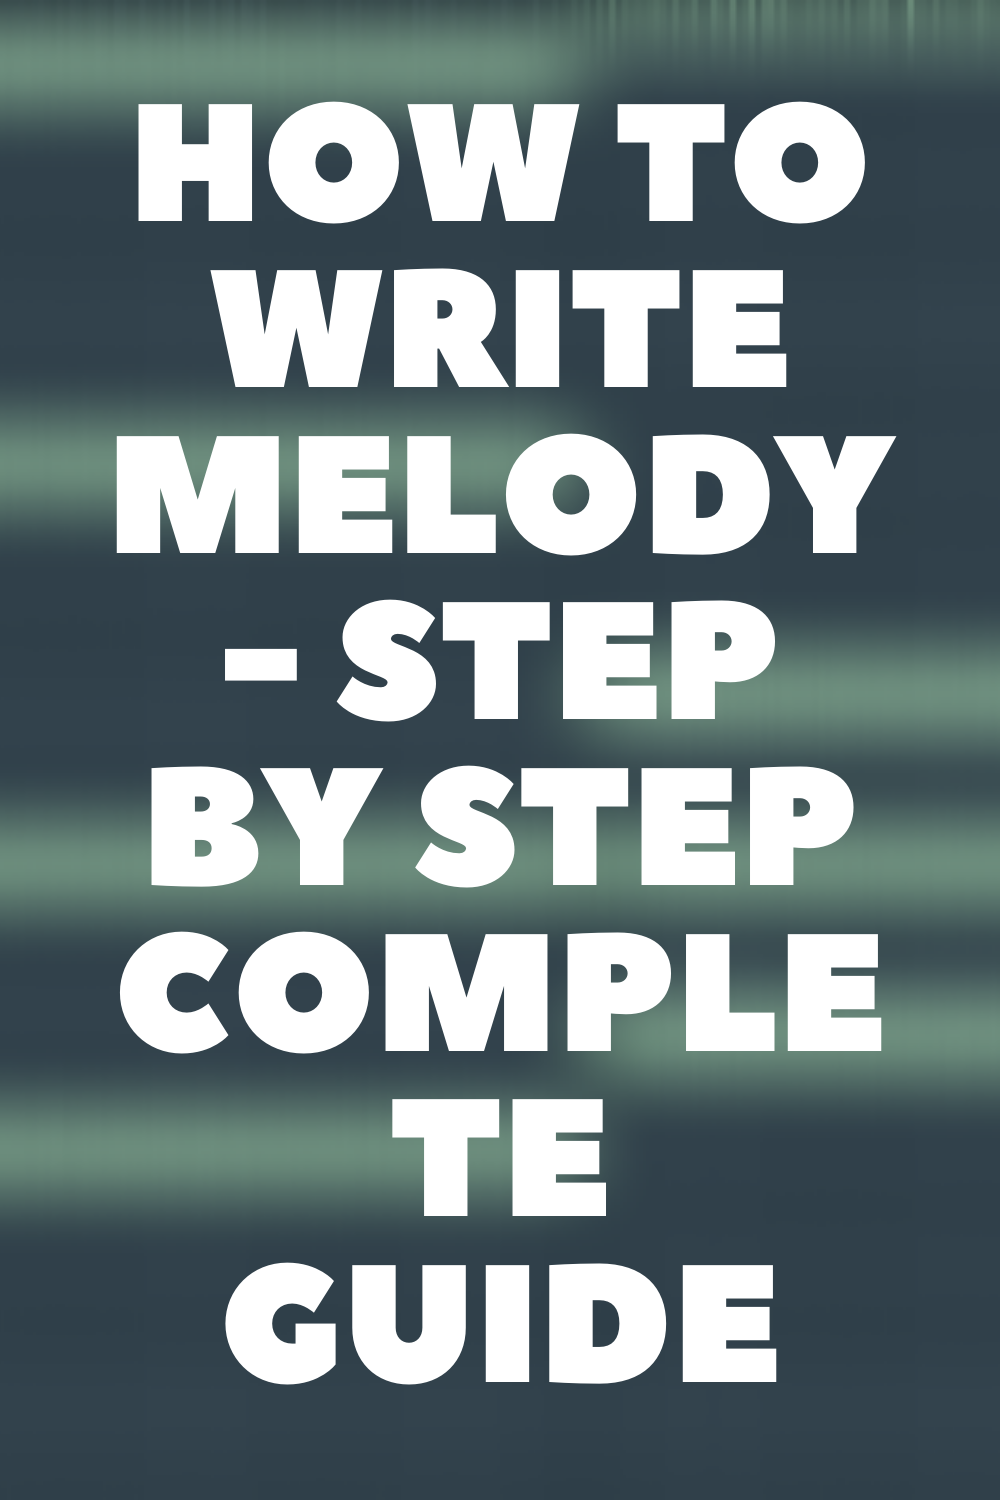 How To WRITE MELODY - Step By Step Complete Guide in 2020 ...